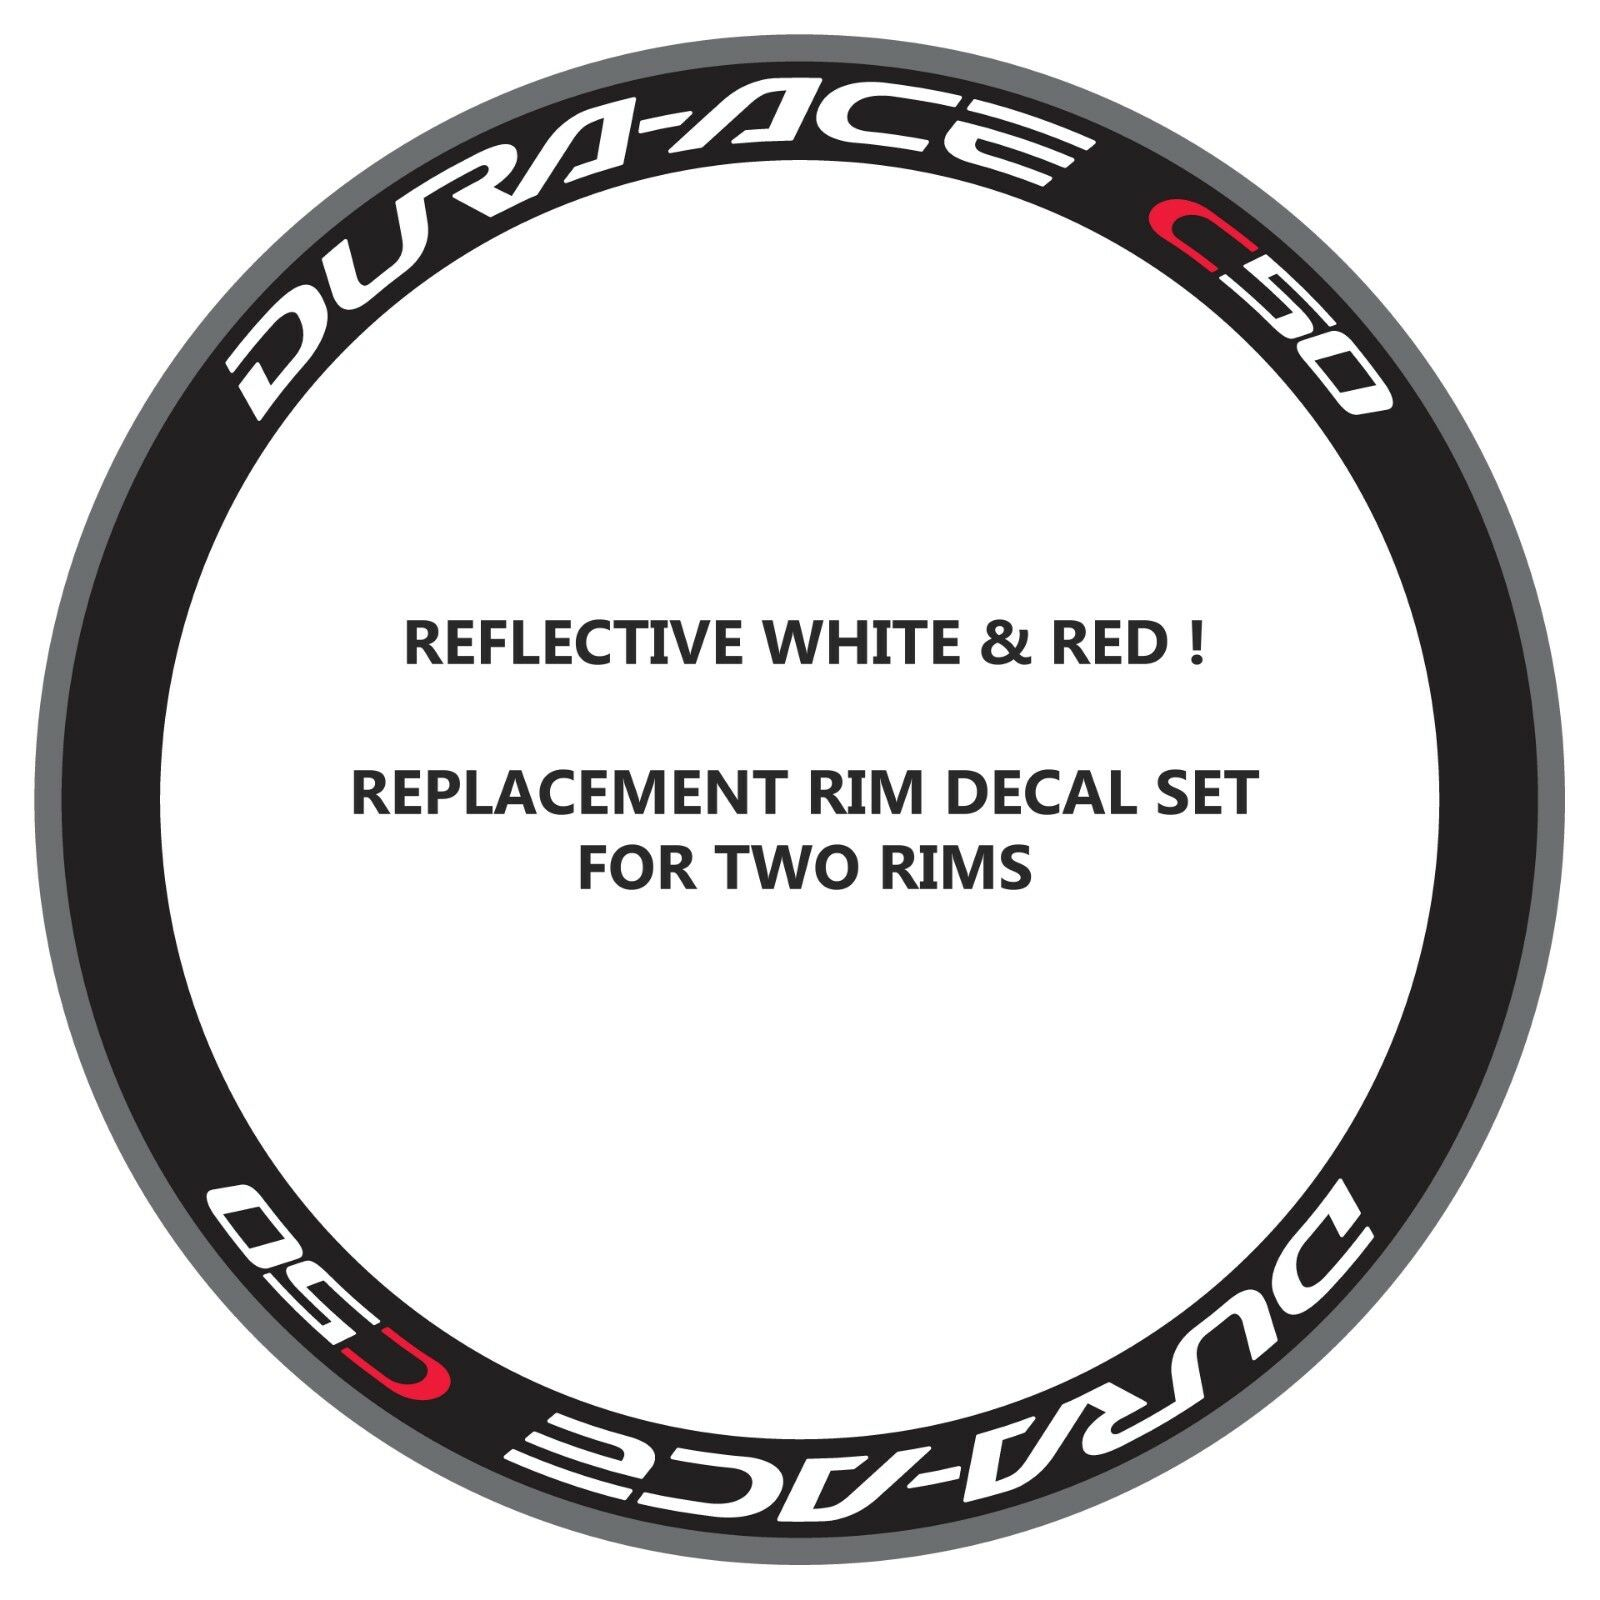 DURA ACE C50 REFLECTIVE WHITE RED REPLACEMENT RIM DECALS FOR 2 RIMS